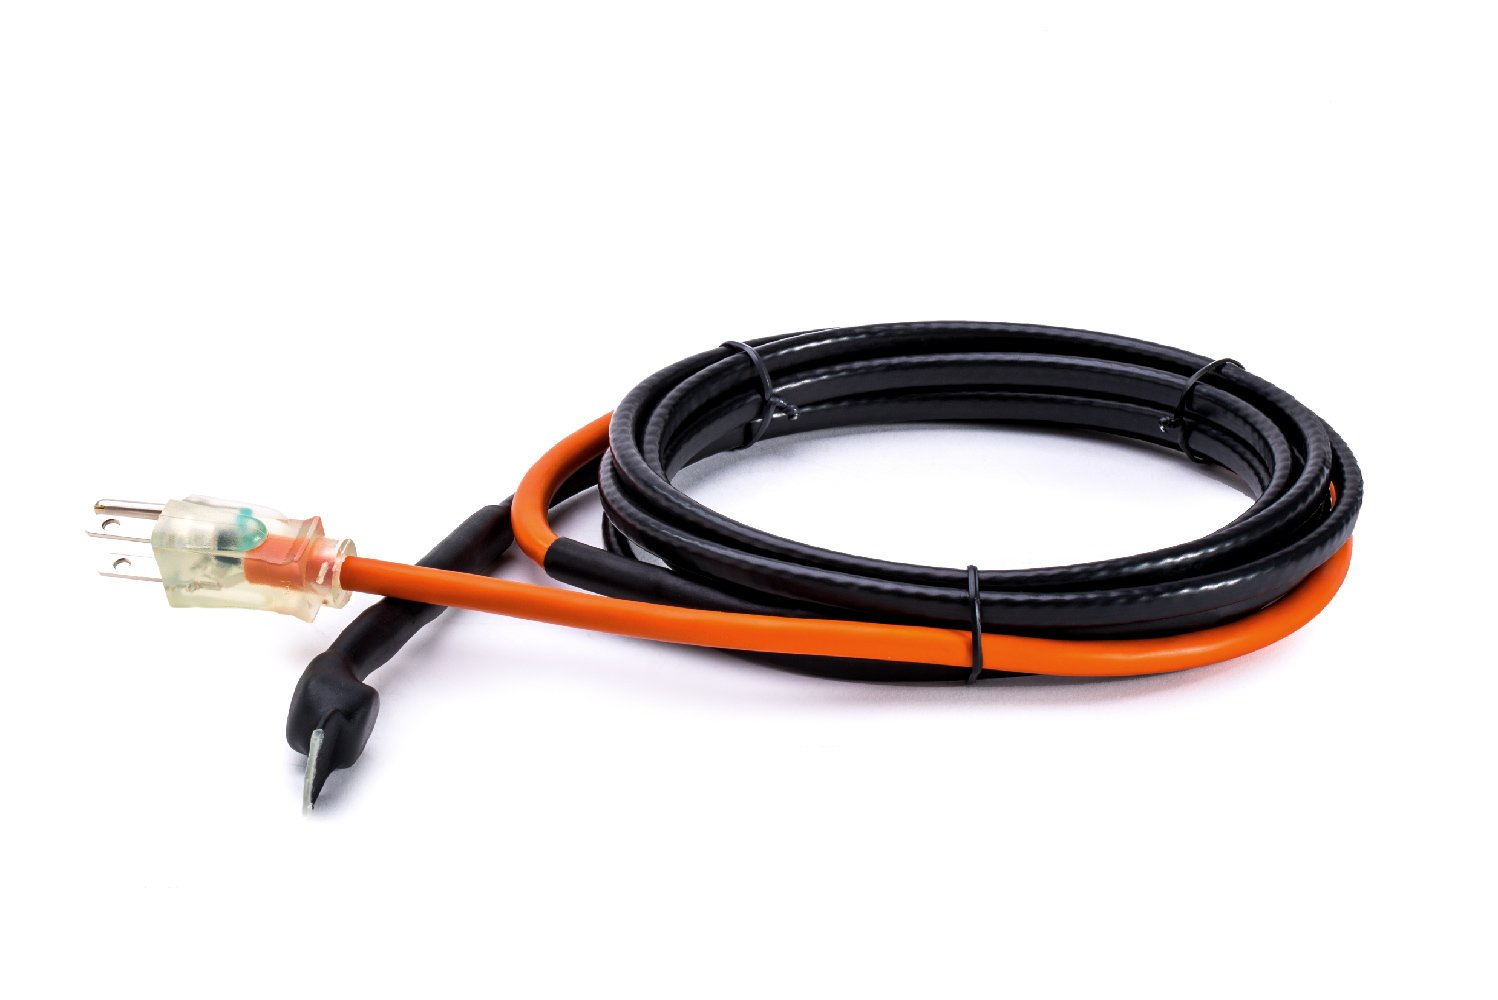 Warmall 15 Feet Electric Pipe Heating Cable Drexma